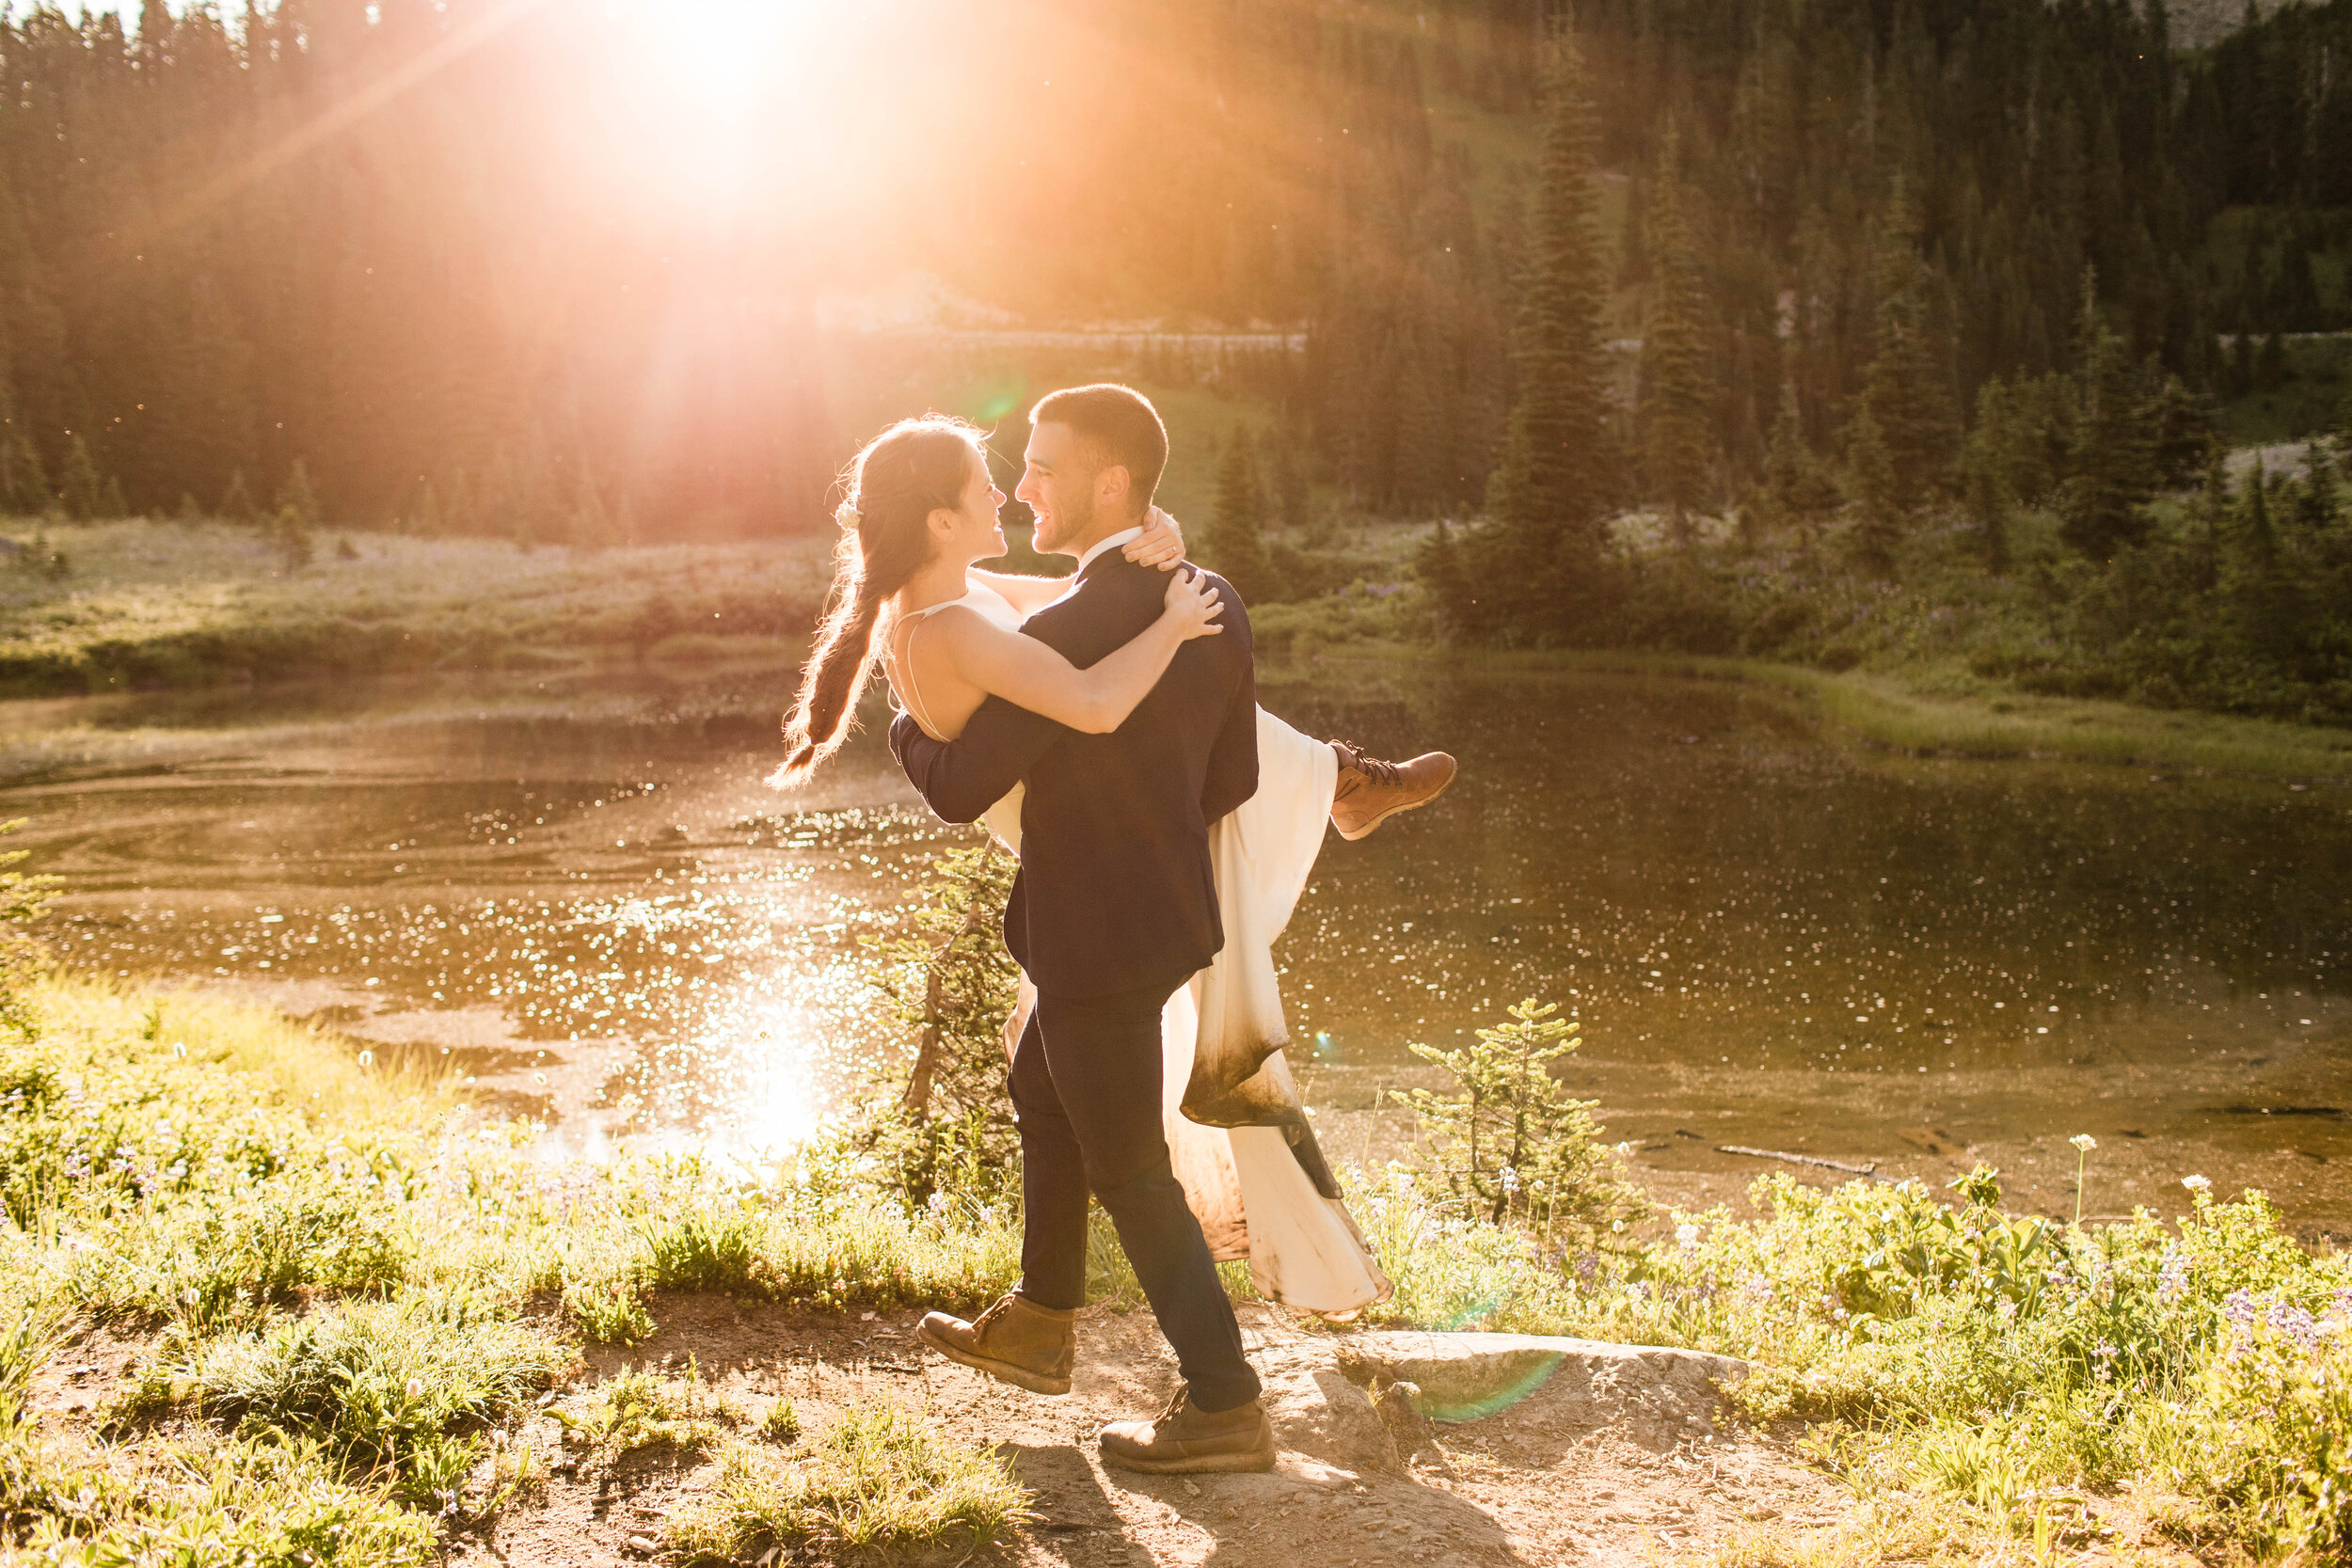 Mt Rainier Adventure Elopement with groom lifting the bride photographed by Colorado Elopement Photographers